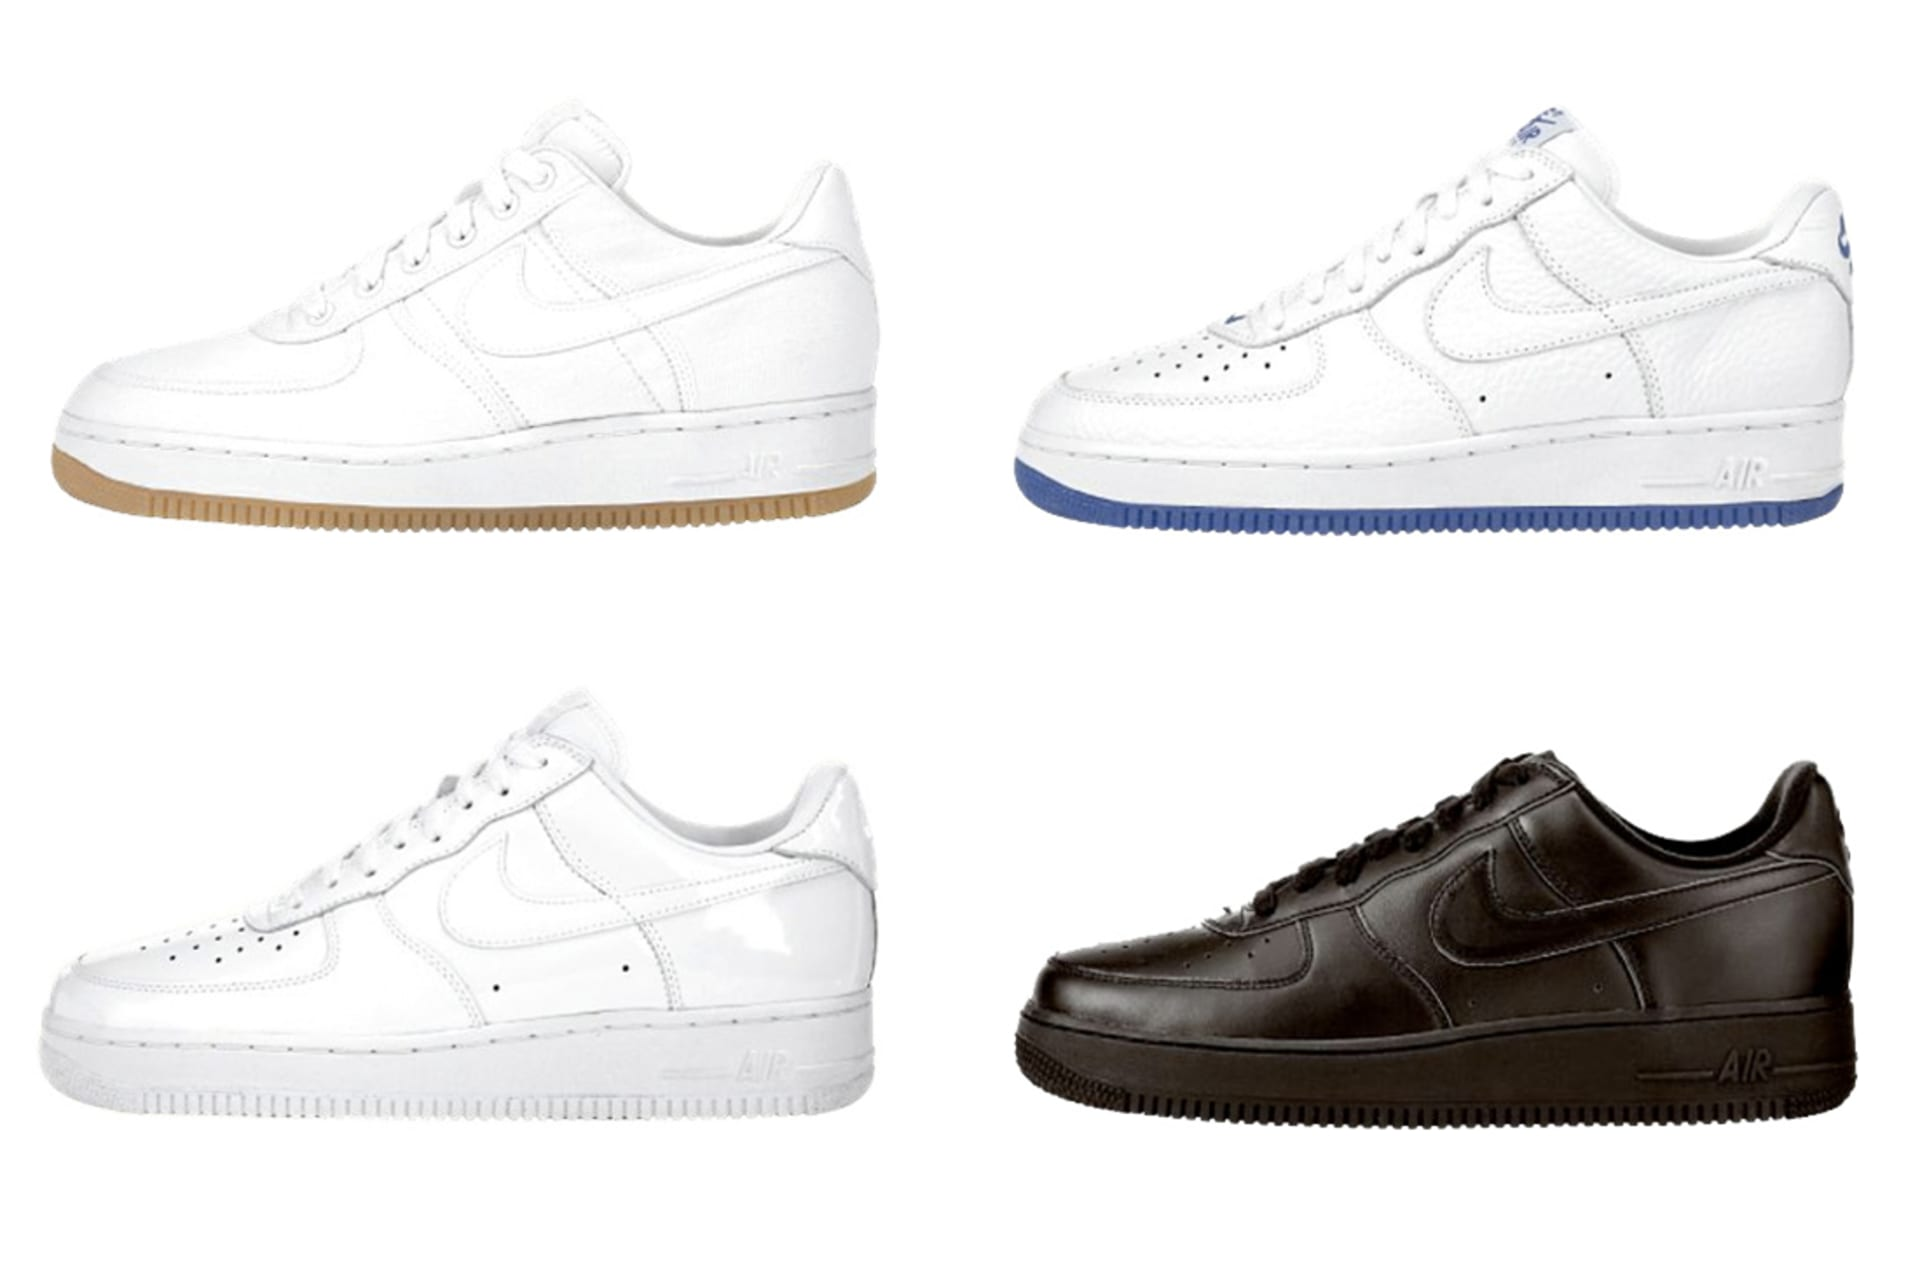 new arrival 37f0e e4e32 1996 Nike Air Force 1